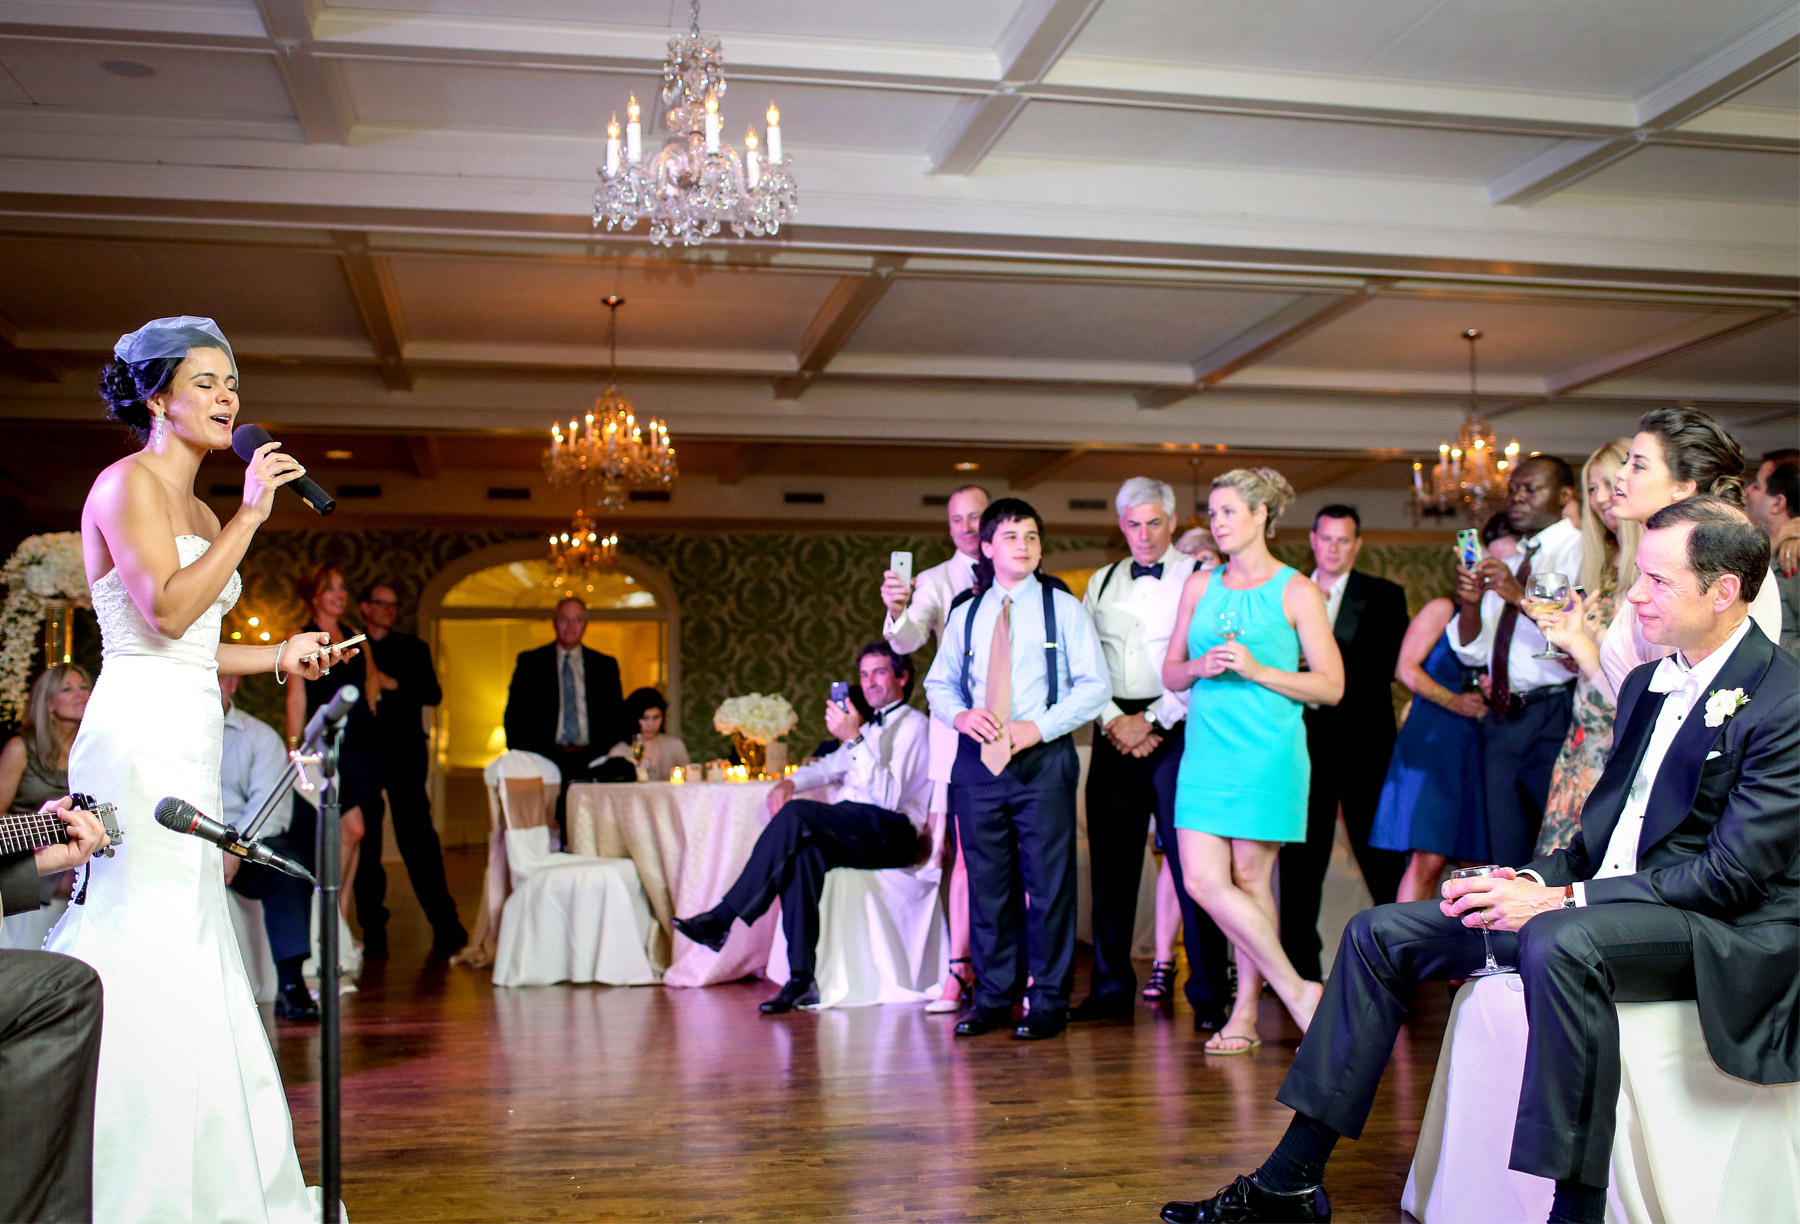 16-Minneapolis-Minnesota-Wedding-Photography-by-Vick-Photography-at-Minikahda-Country-Club-Reception-Leticia-&-Jay.jpg